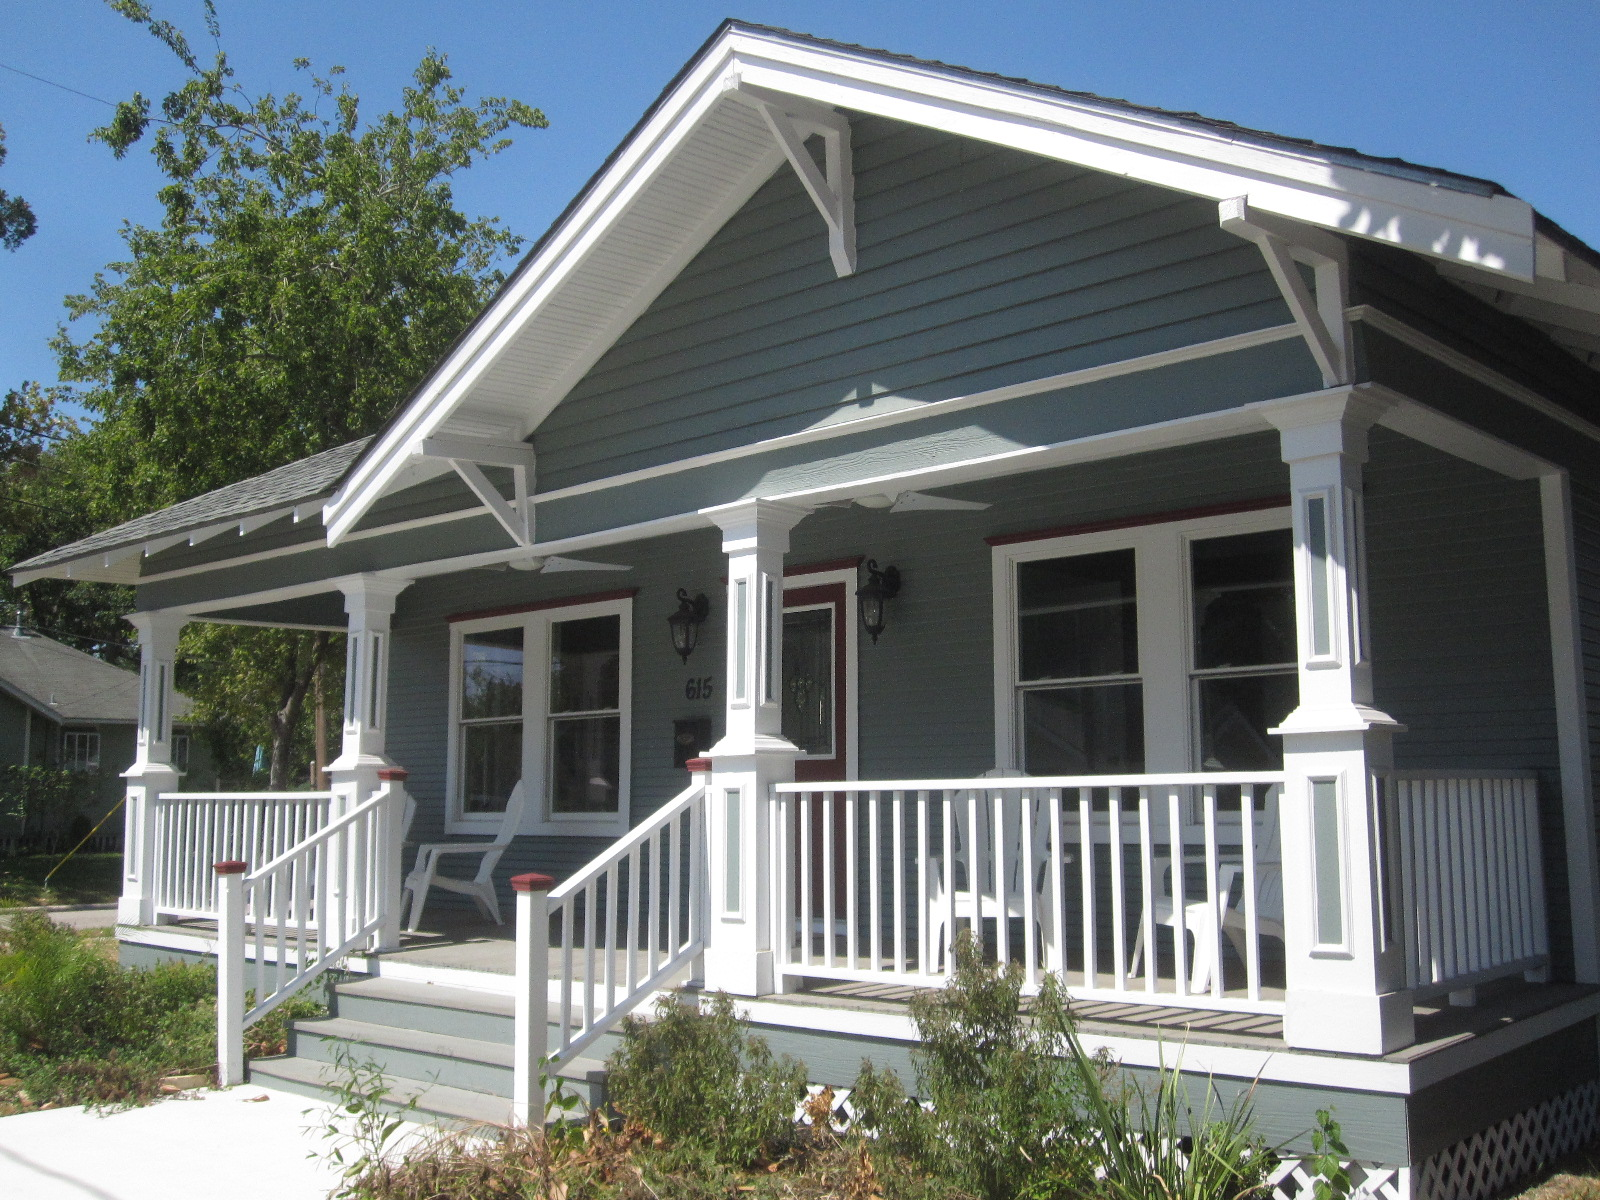 The other houston cozy bungalow porches for Porch designs for bungalows uk